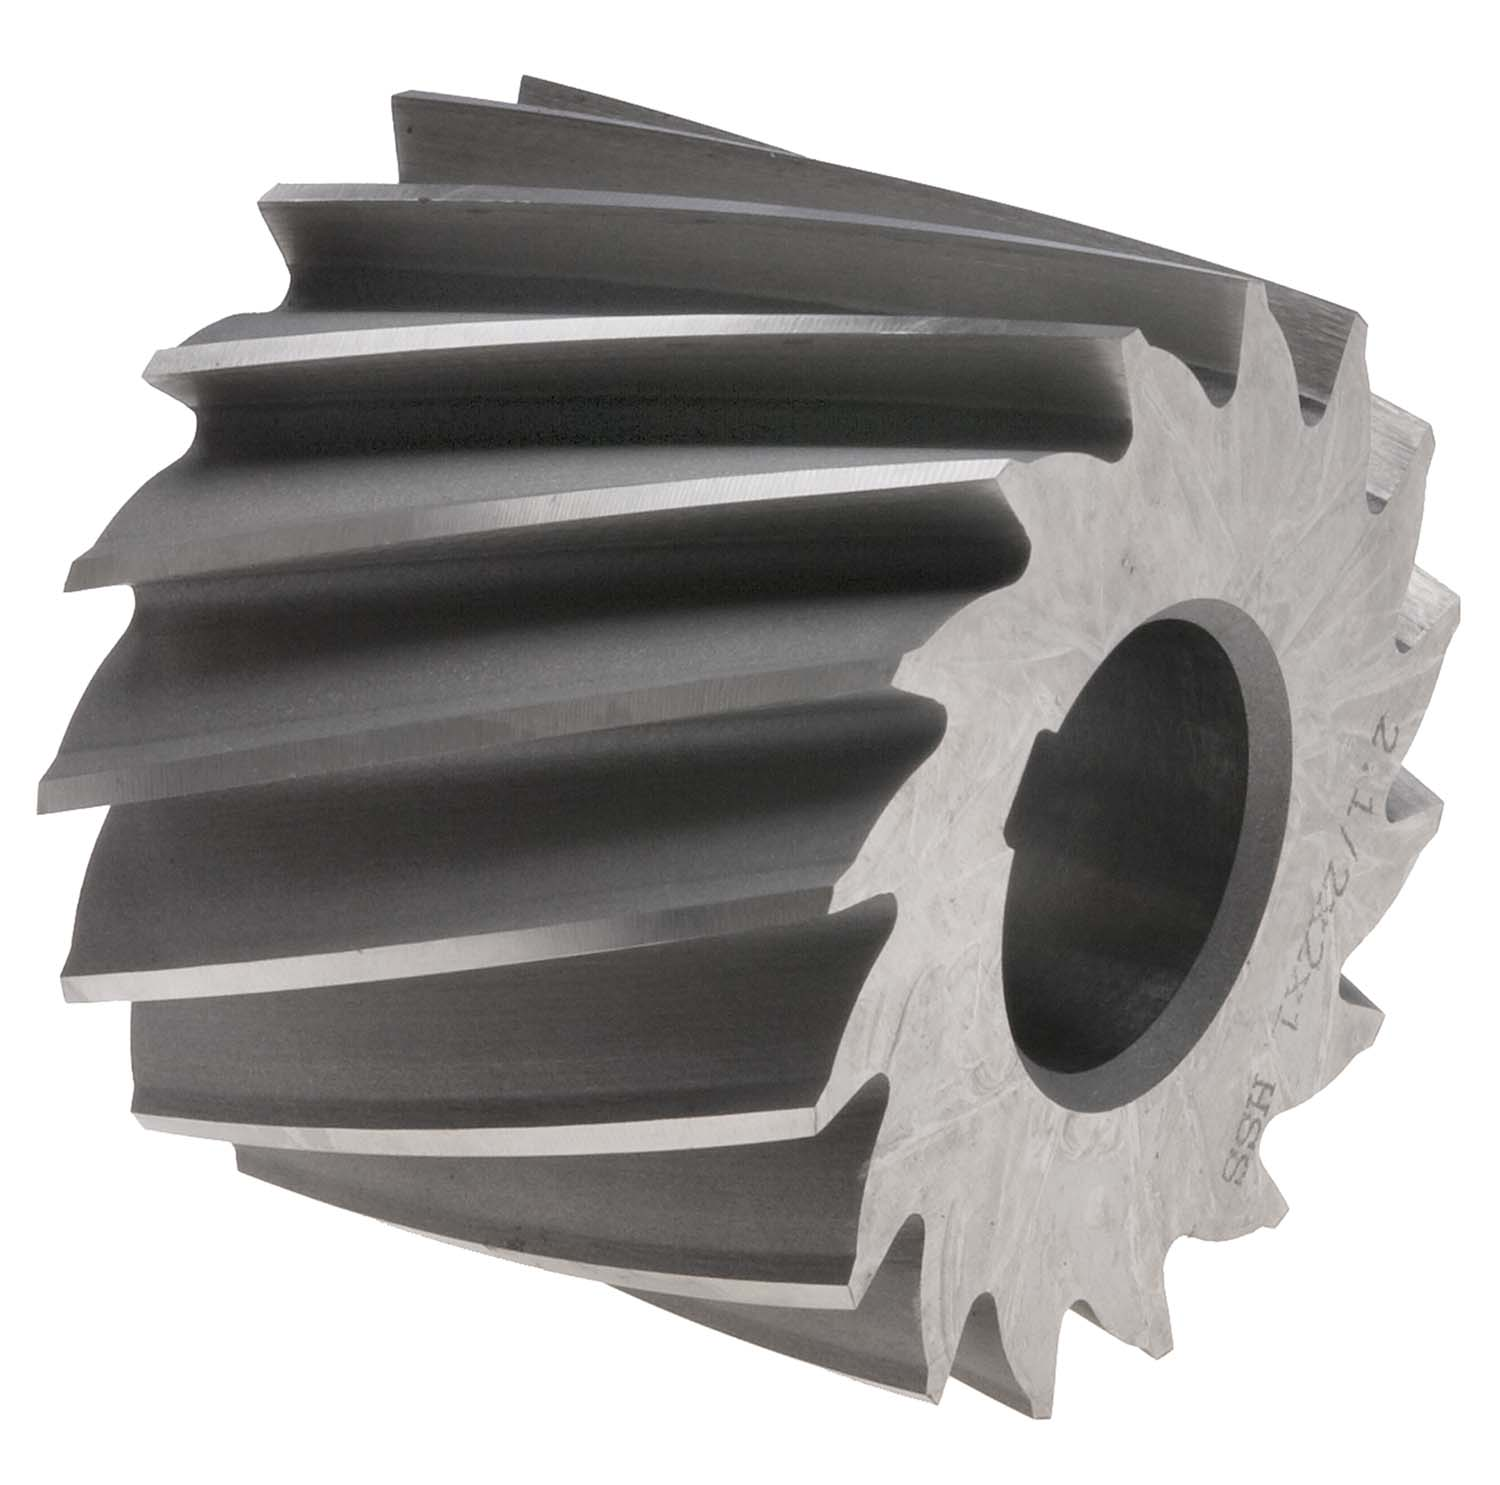 2-1/2 X 3/16 X 1 Plain Milling Cutter, High Speed Steel